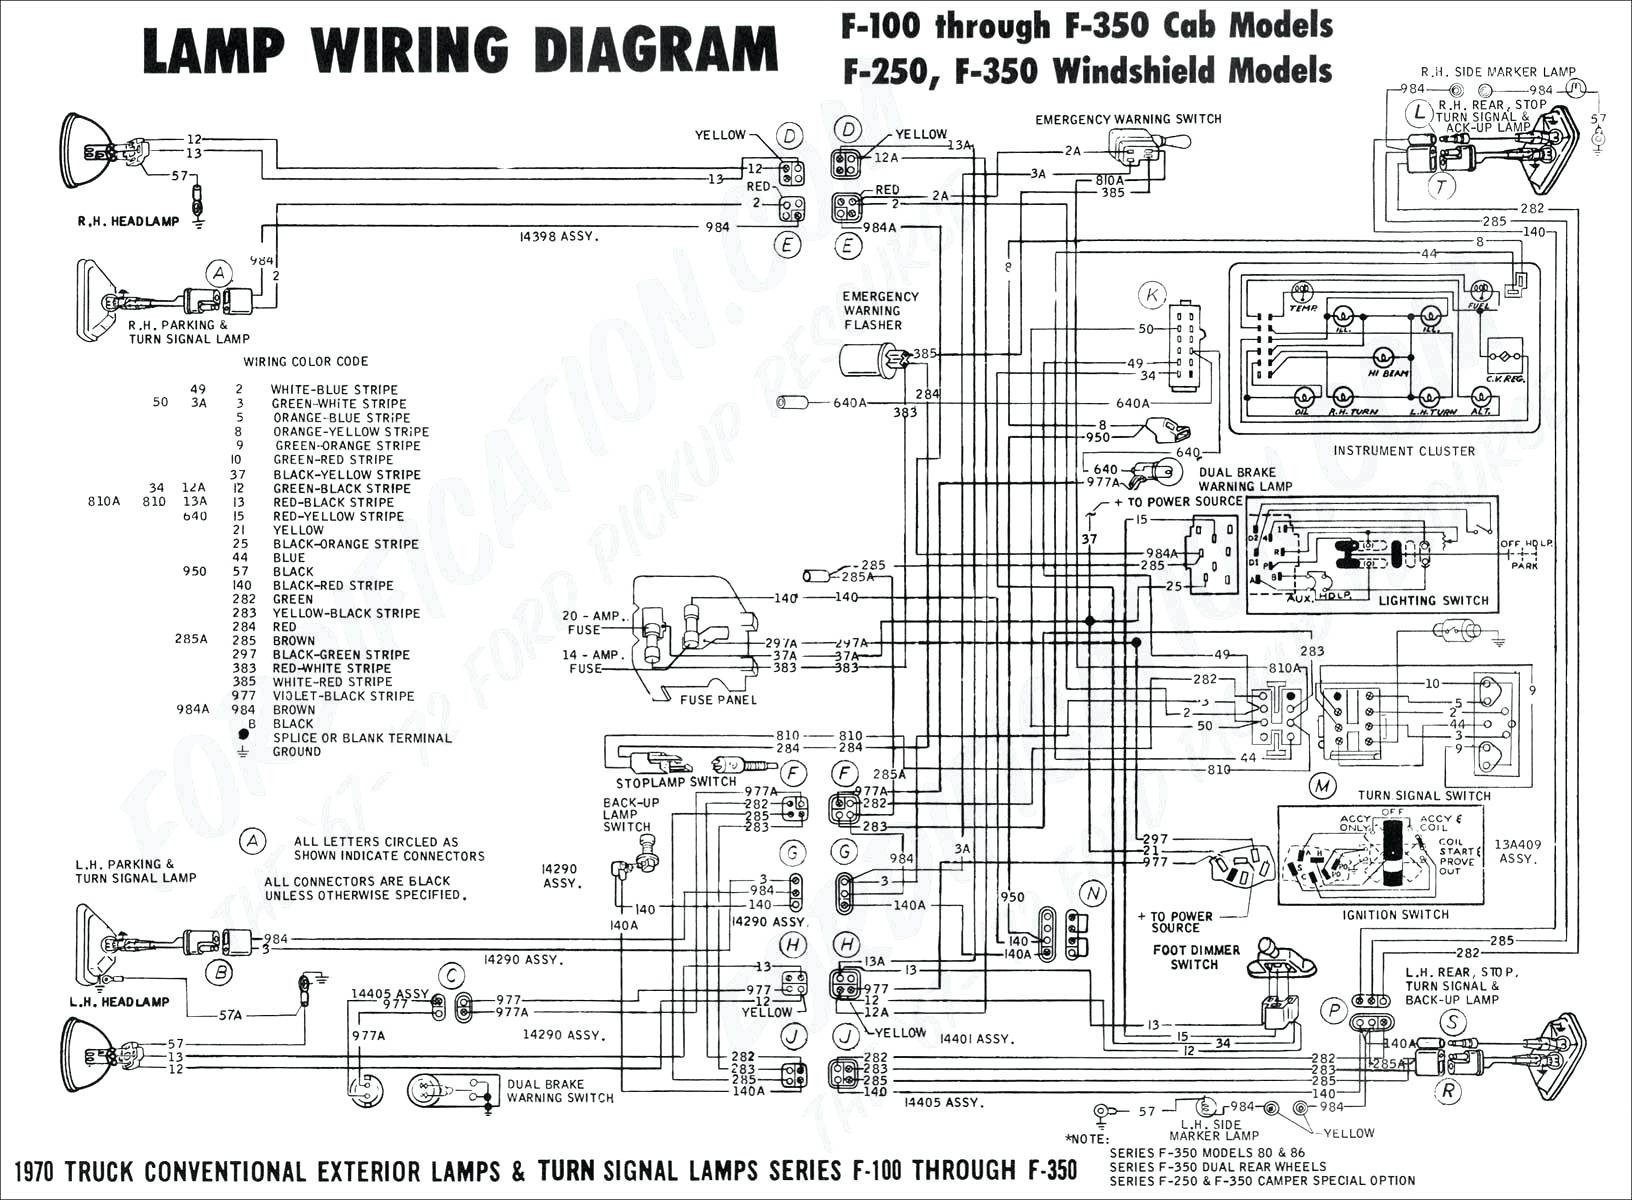 f53 wiring radio data wiring diagrams u2022 rh 45 77 211 17 1999 ford f53 chassis wiring diagram Ford F53 Chassis Manual